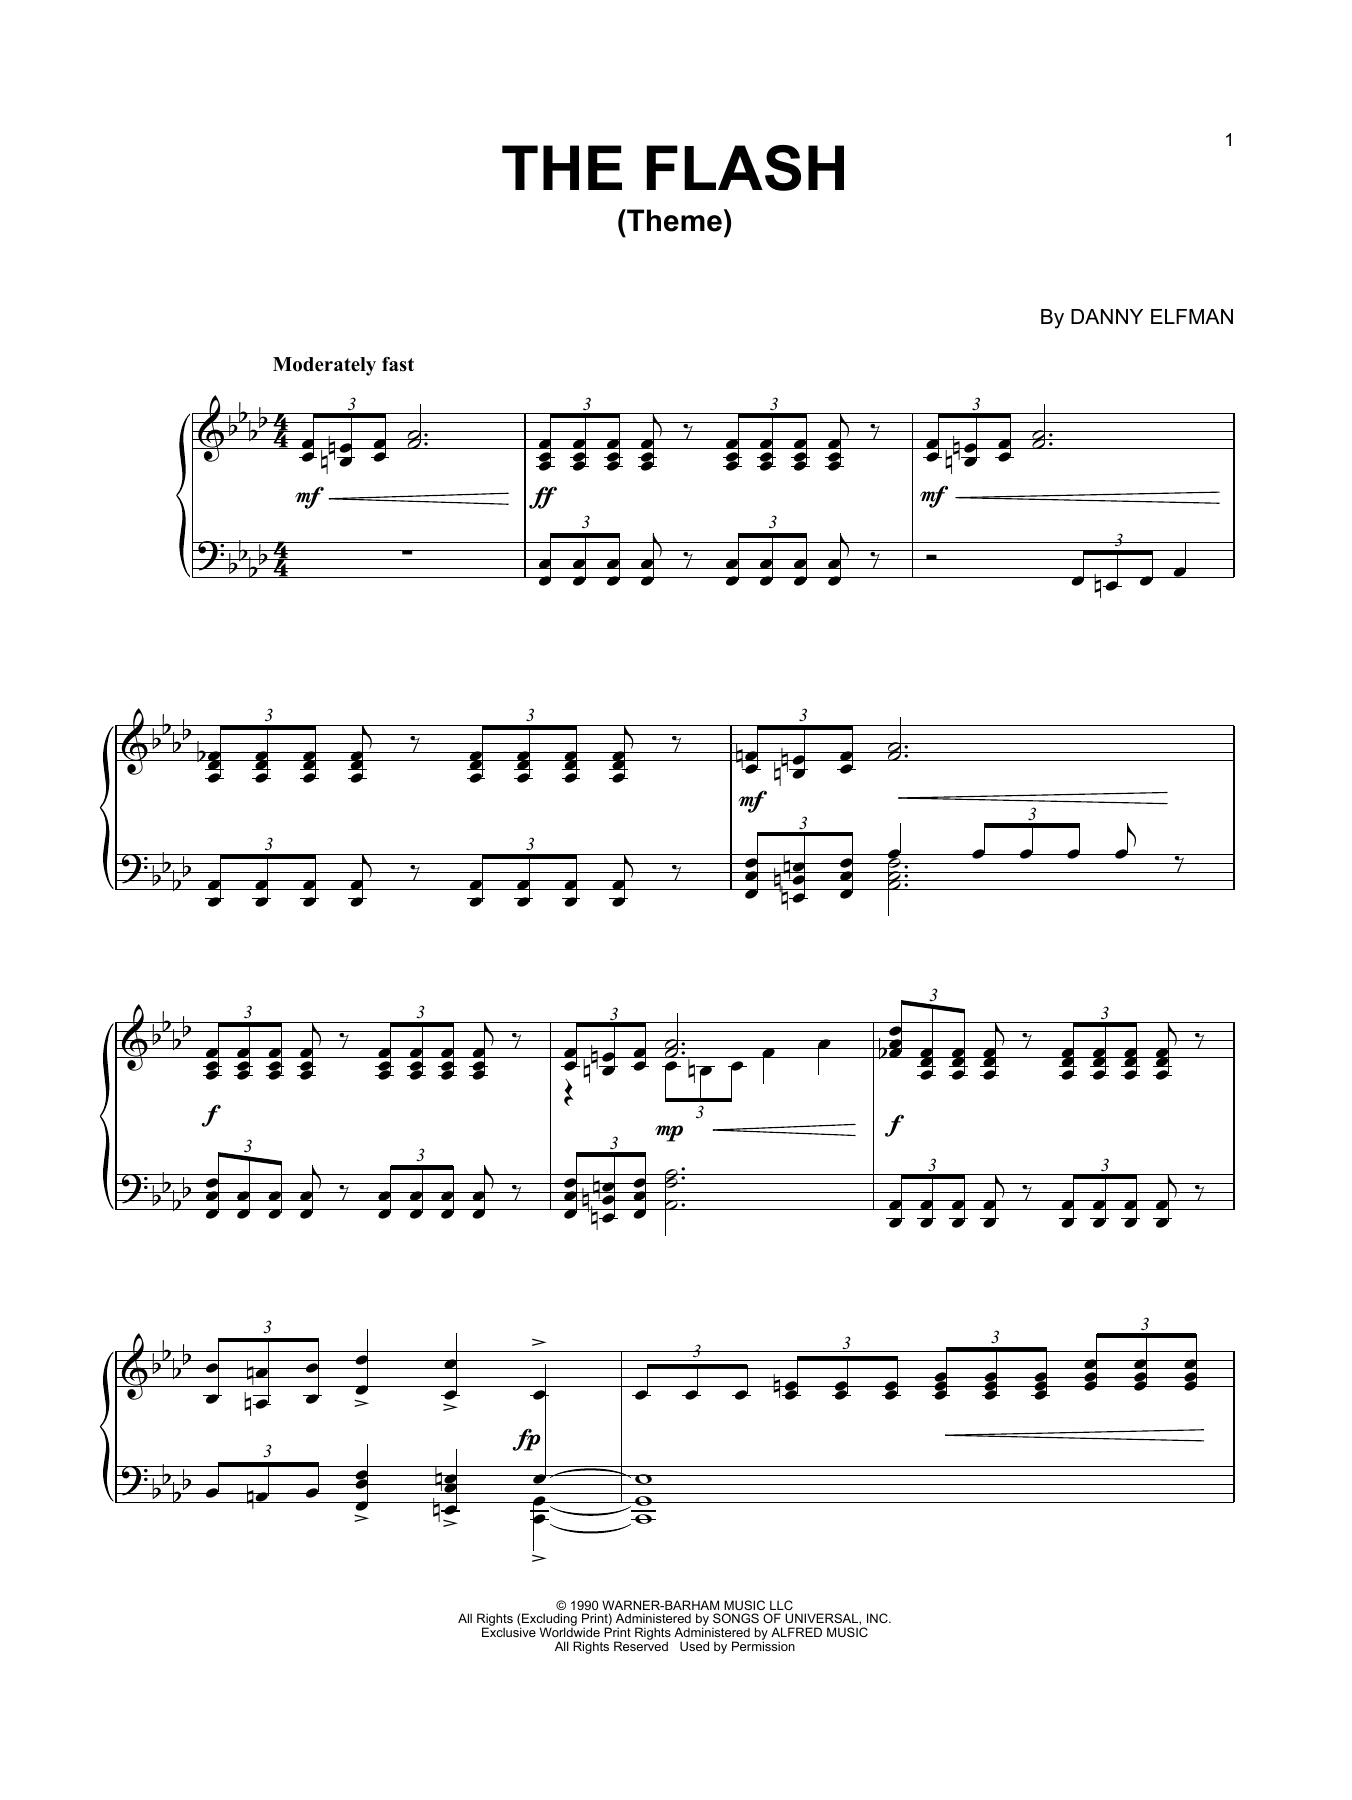 Danny Elfman Theme From The Flash sheet music notes and chords